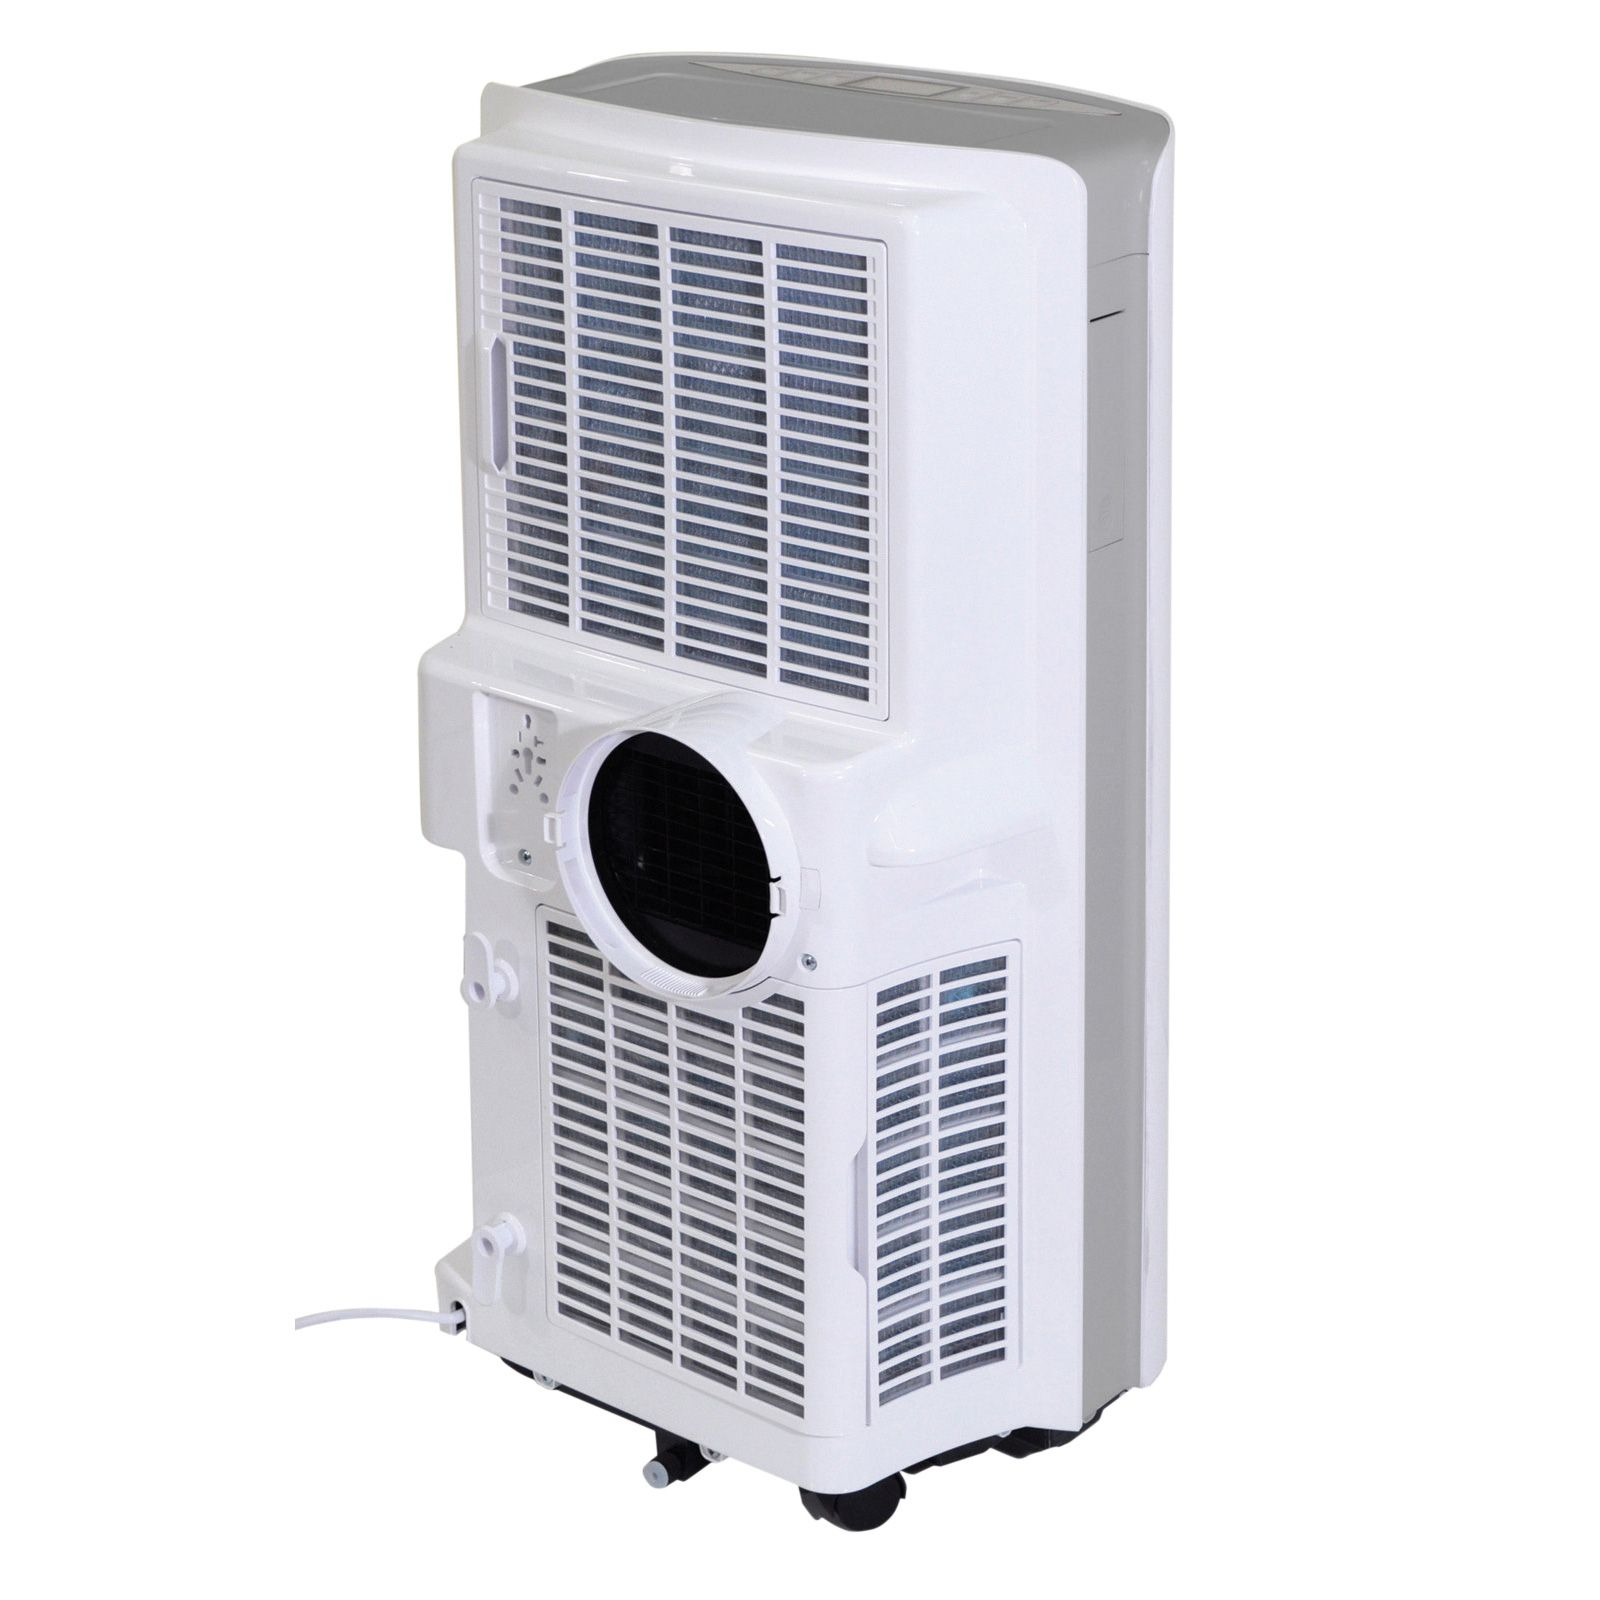 eh1640 portable air conditioner with remote control timer. Black Bedroom Furniture Sets. Home Design Ideas